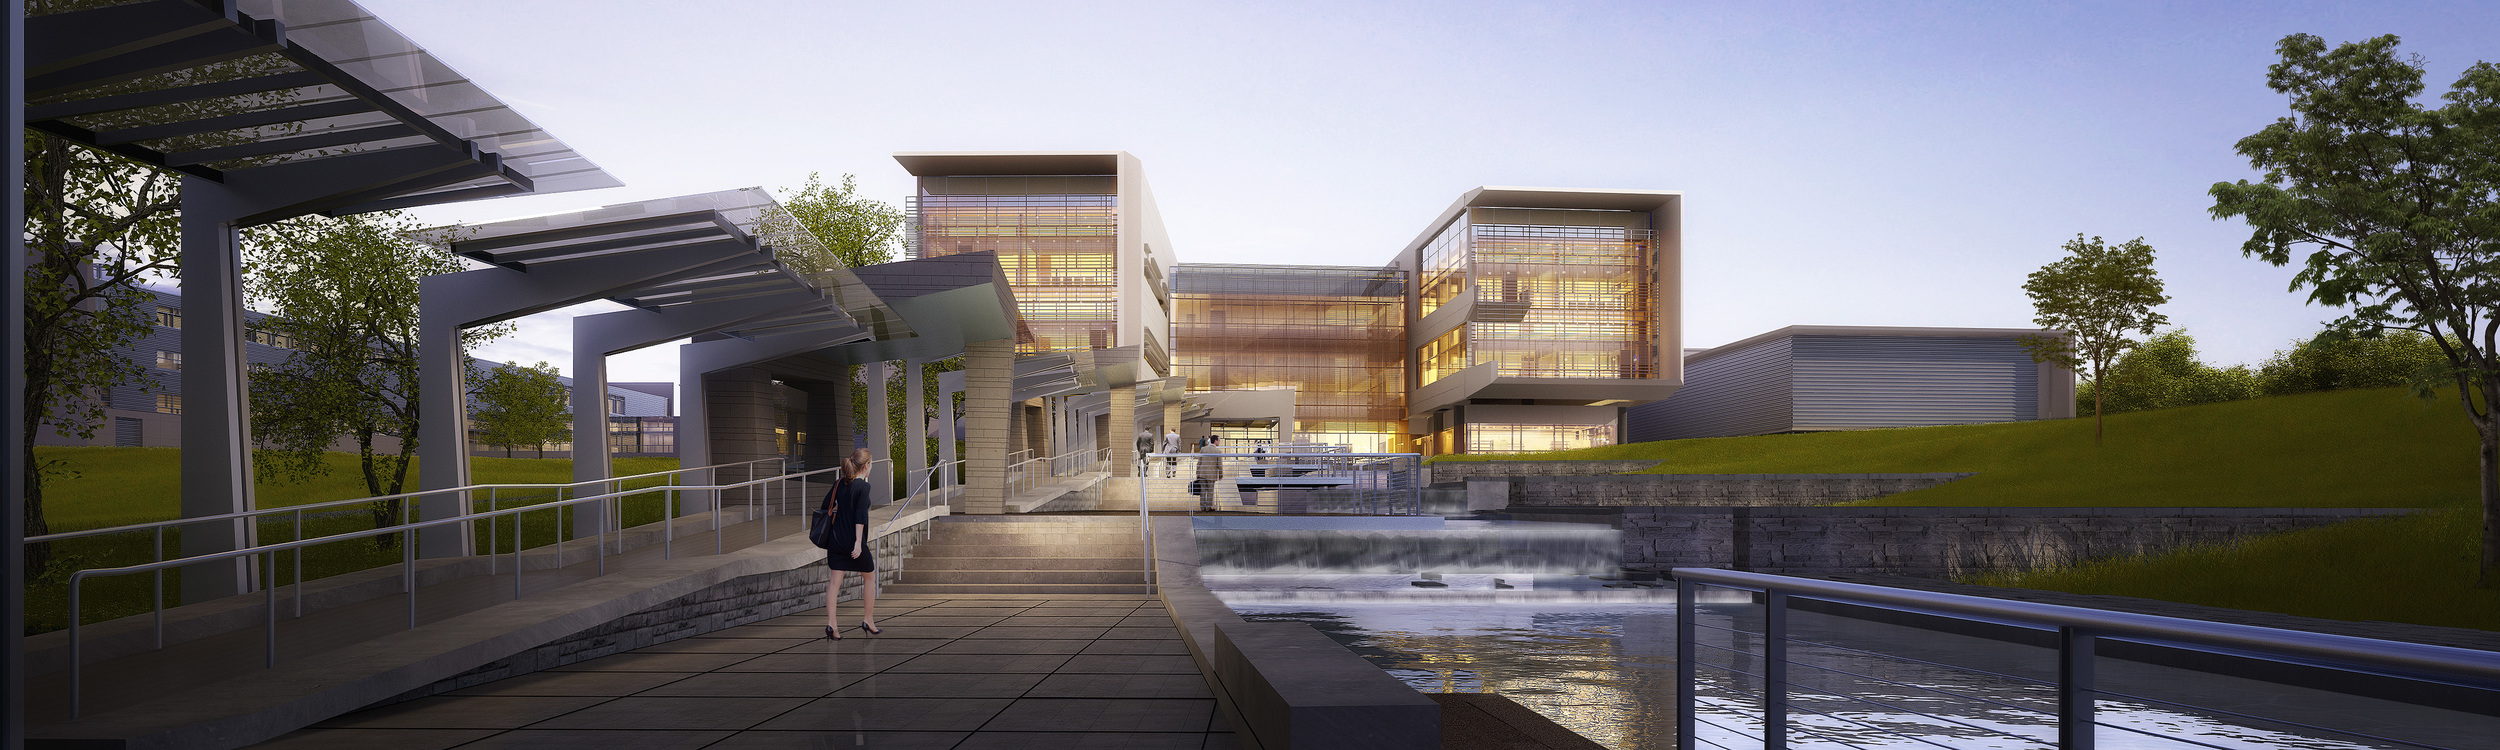 NBAF. Project designed by Marco Cano working at Haynes Whaley Associates.  Renderings courtesy of Perkins+Will